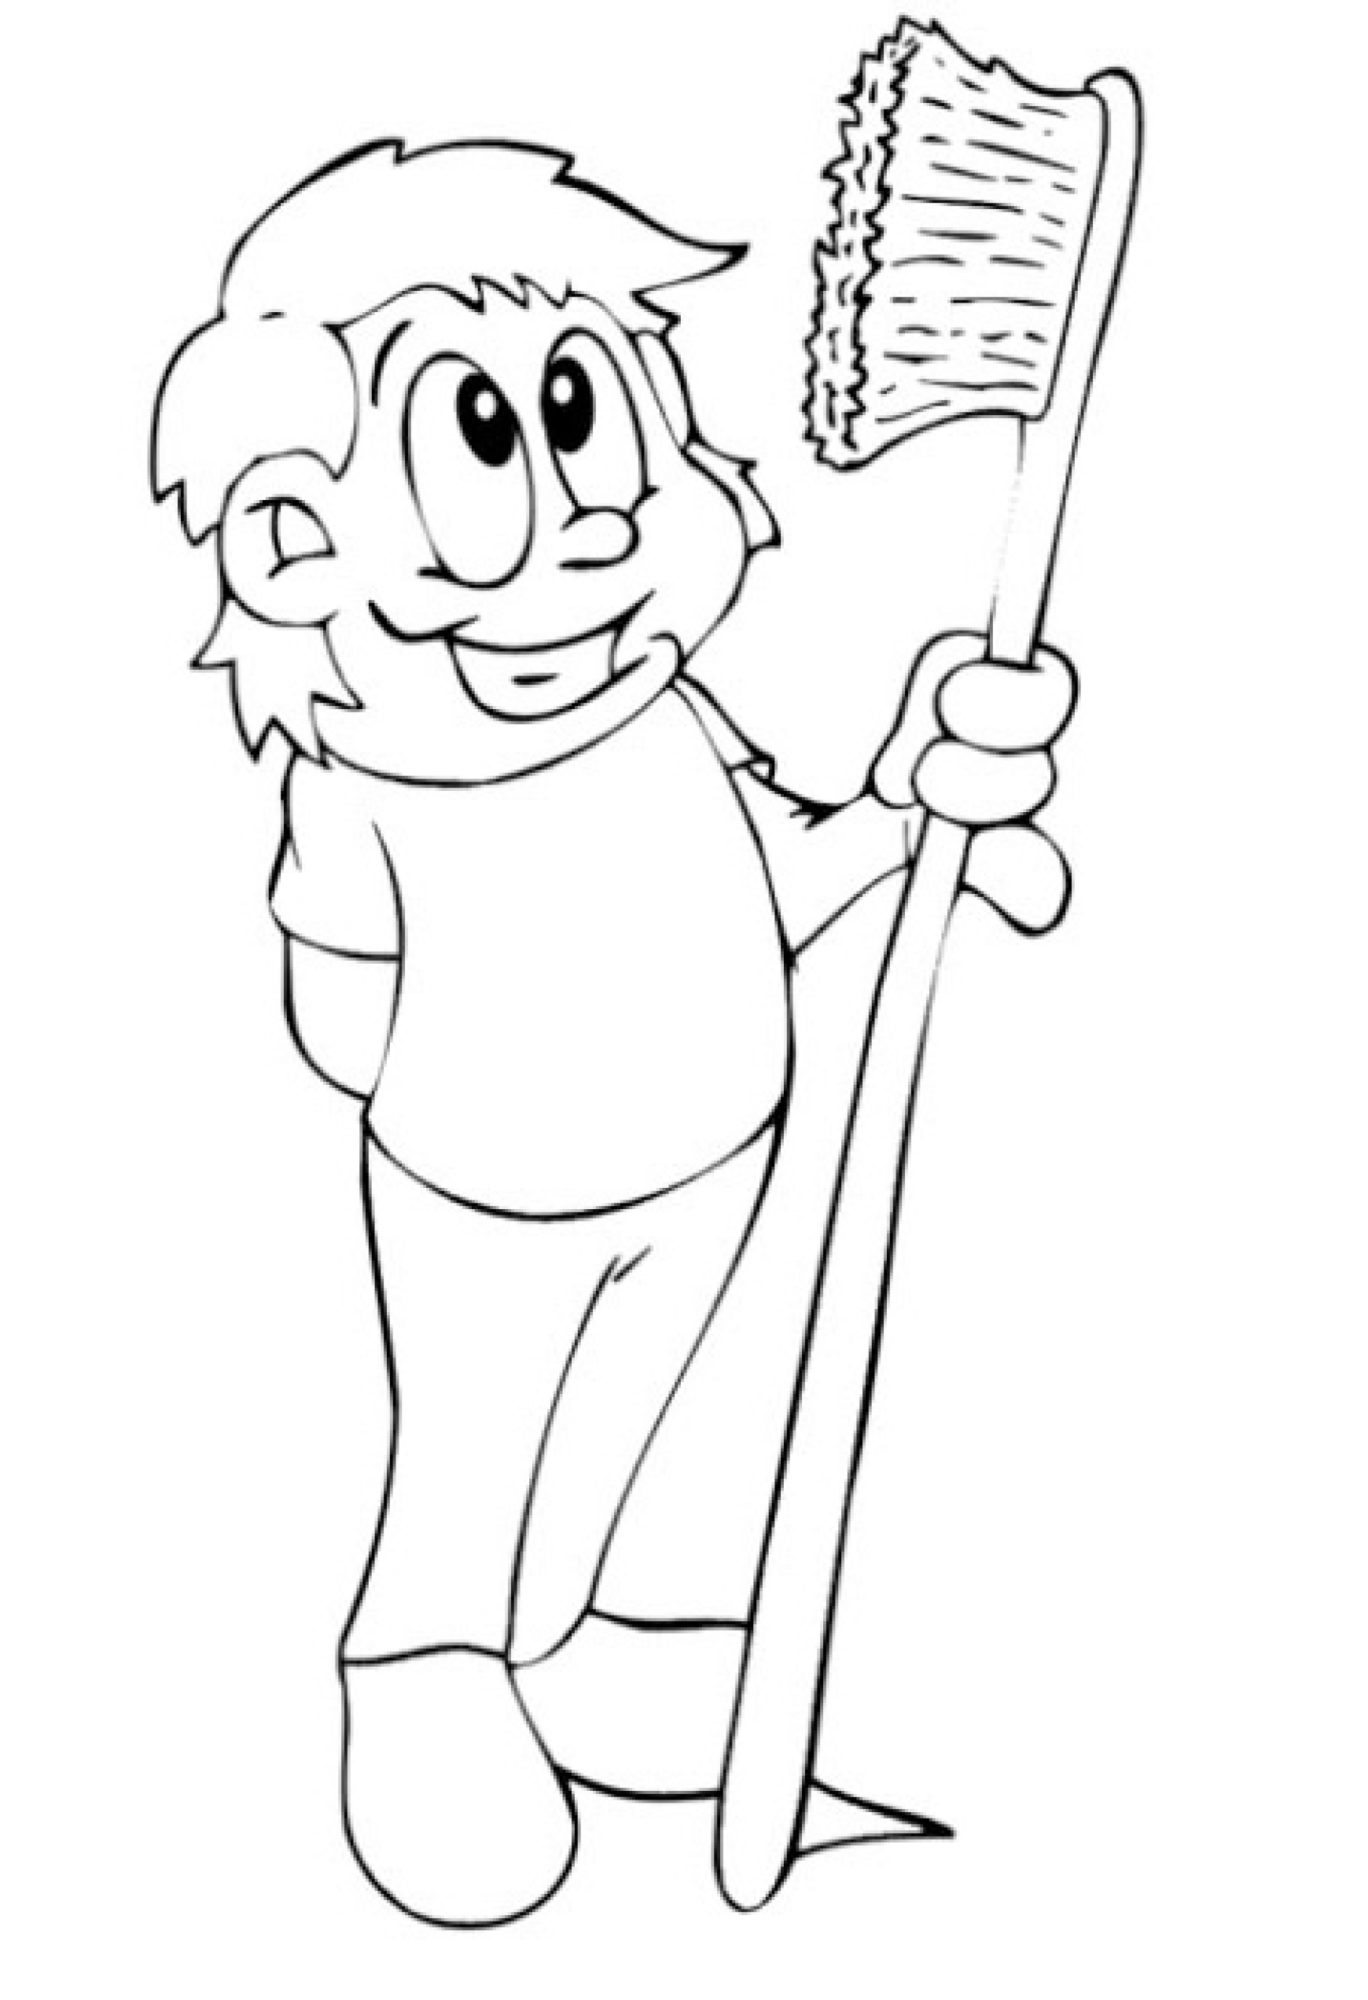 toothbrushing coloring pages - photo#31